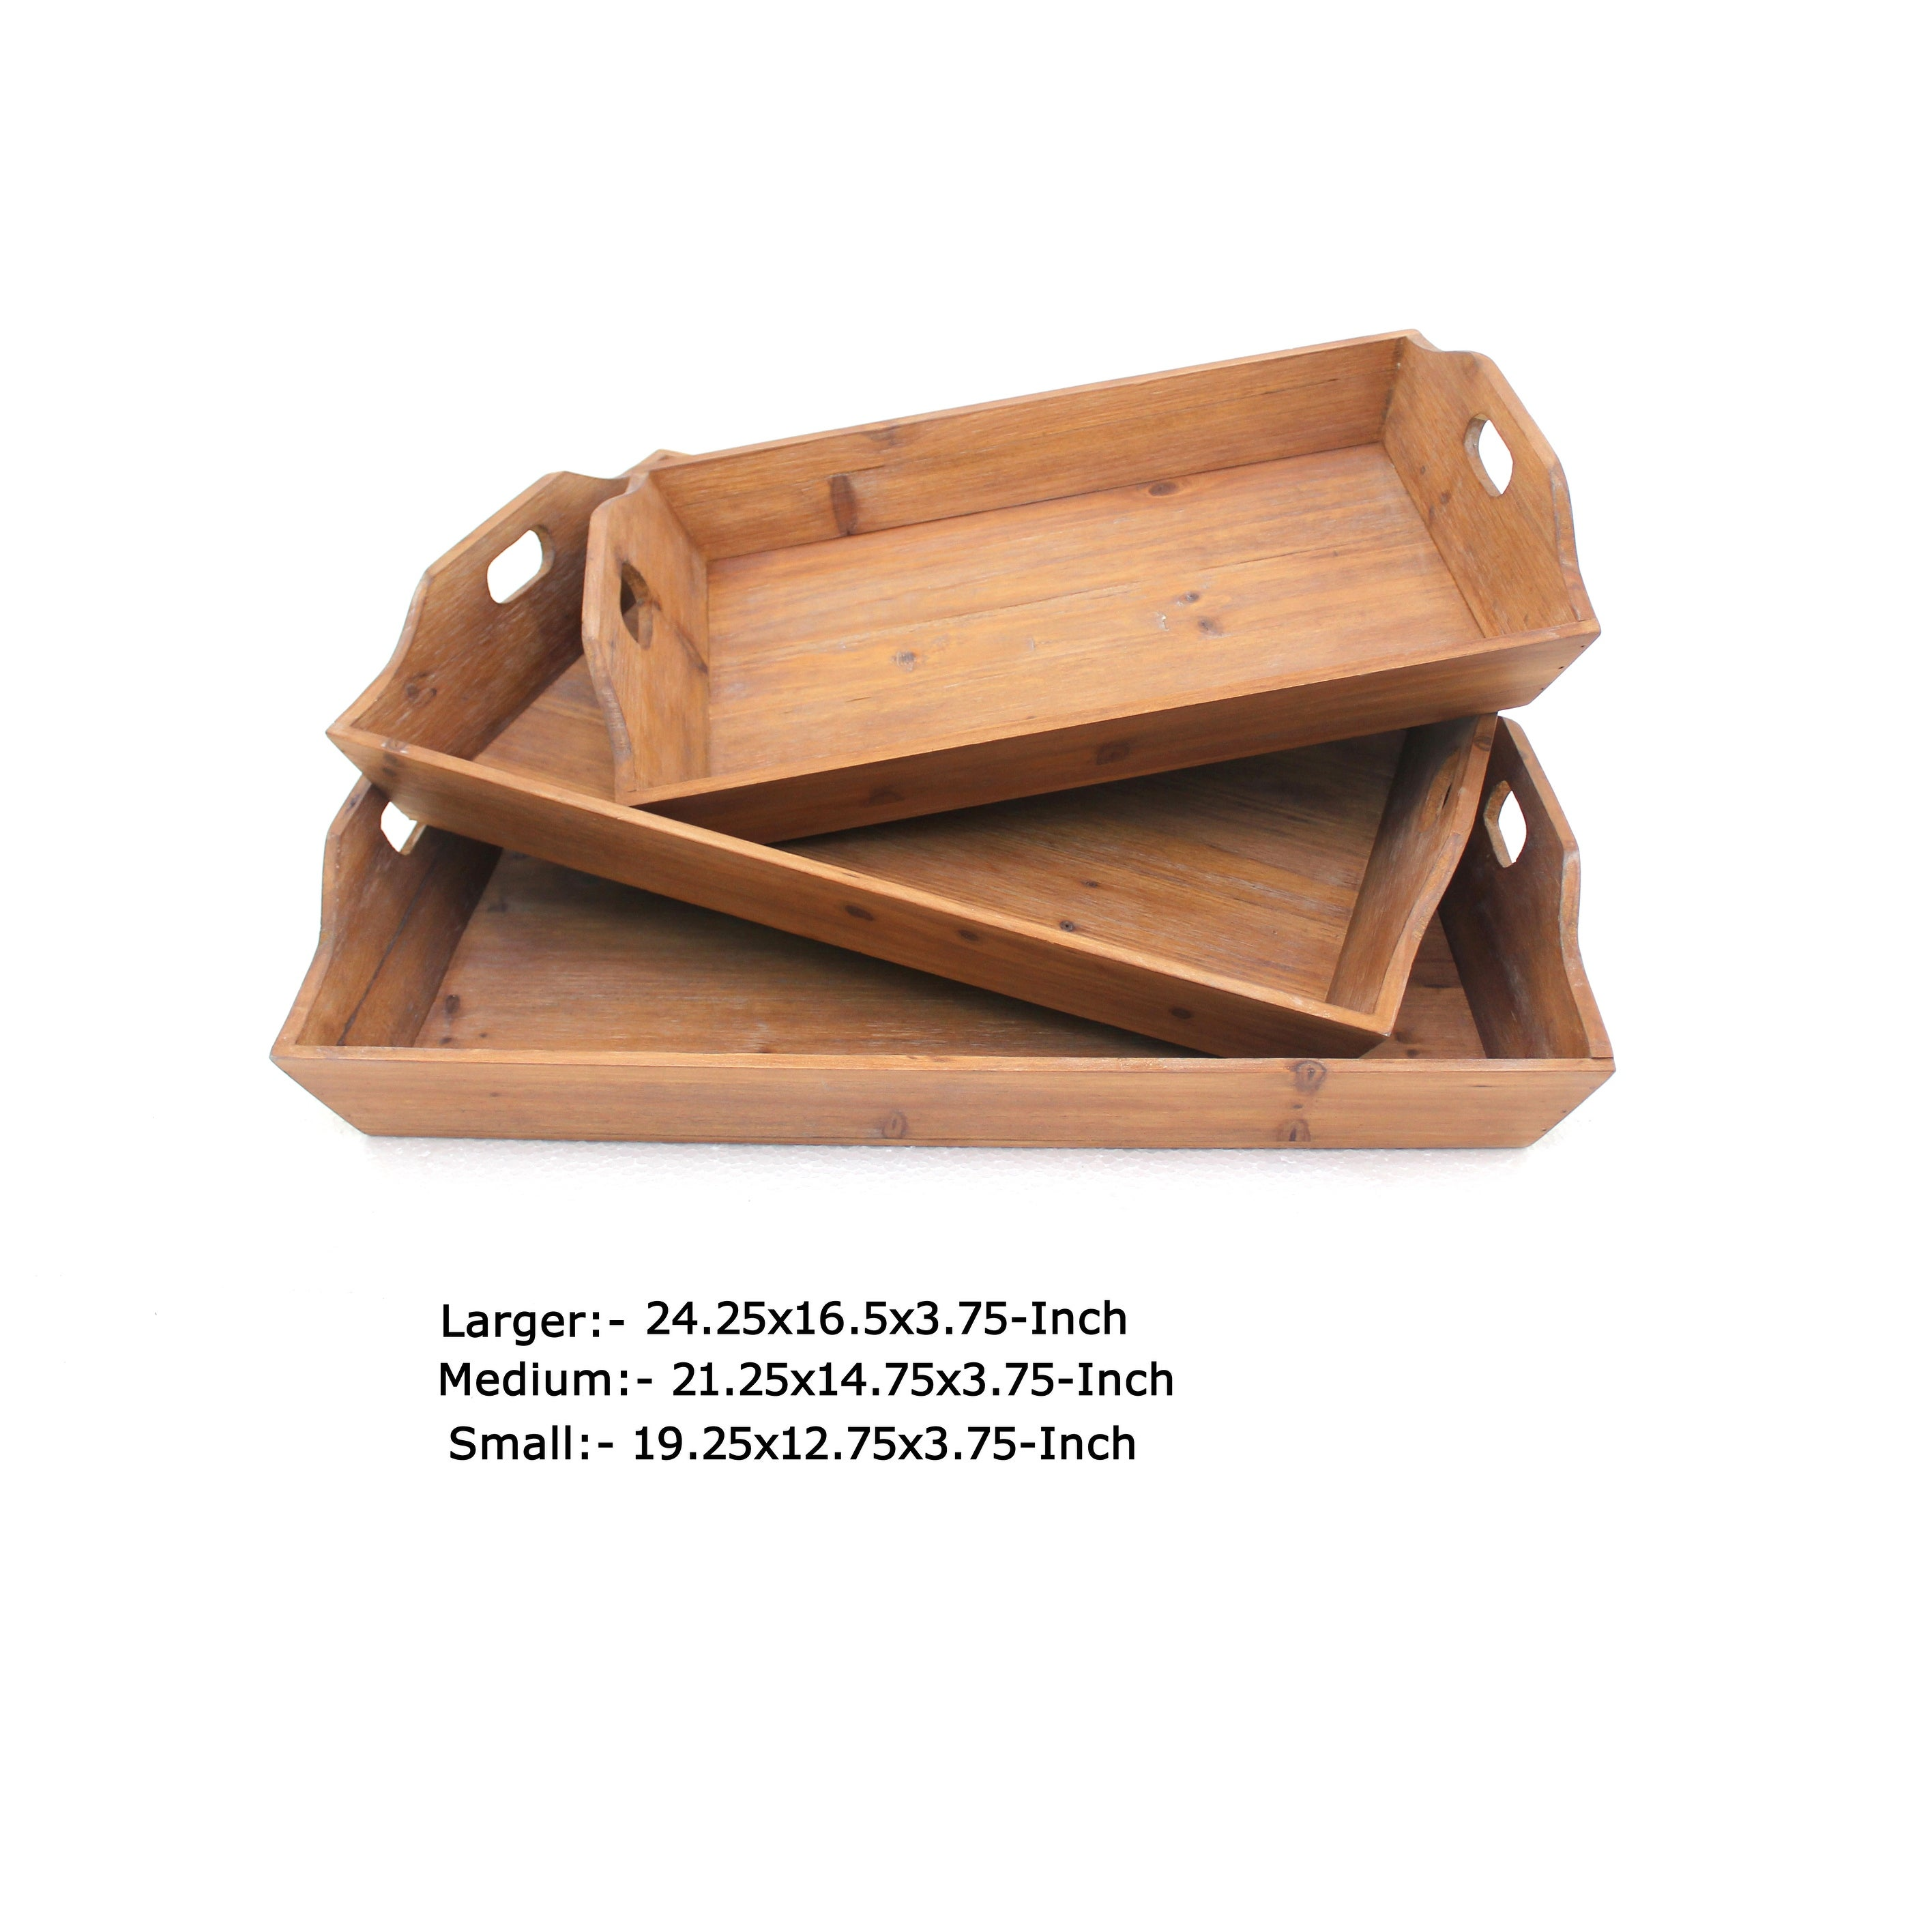 Rectangular Wooden Serving Tray With Cut Out Handles Set Of 3 Brown On Sale Overstock 31247318